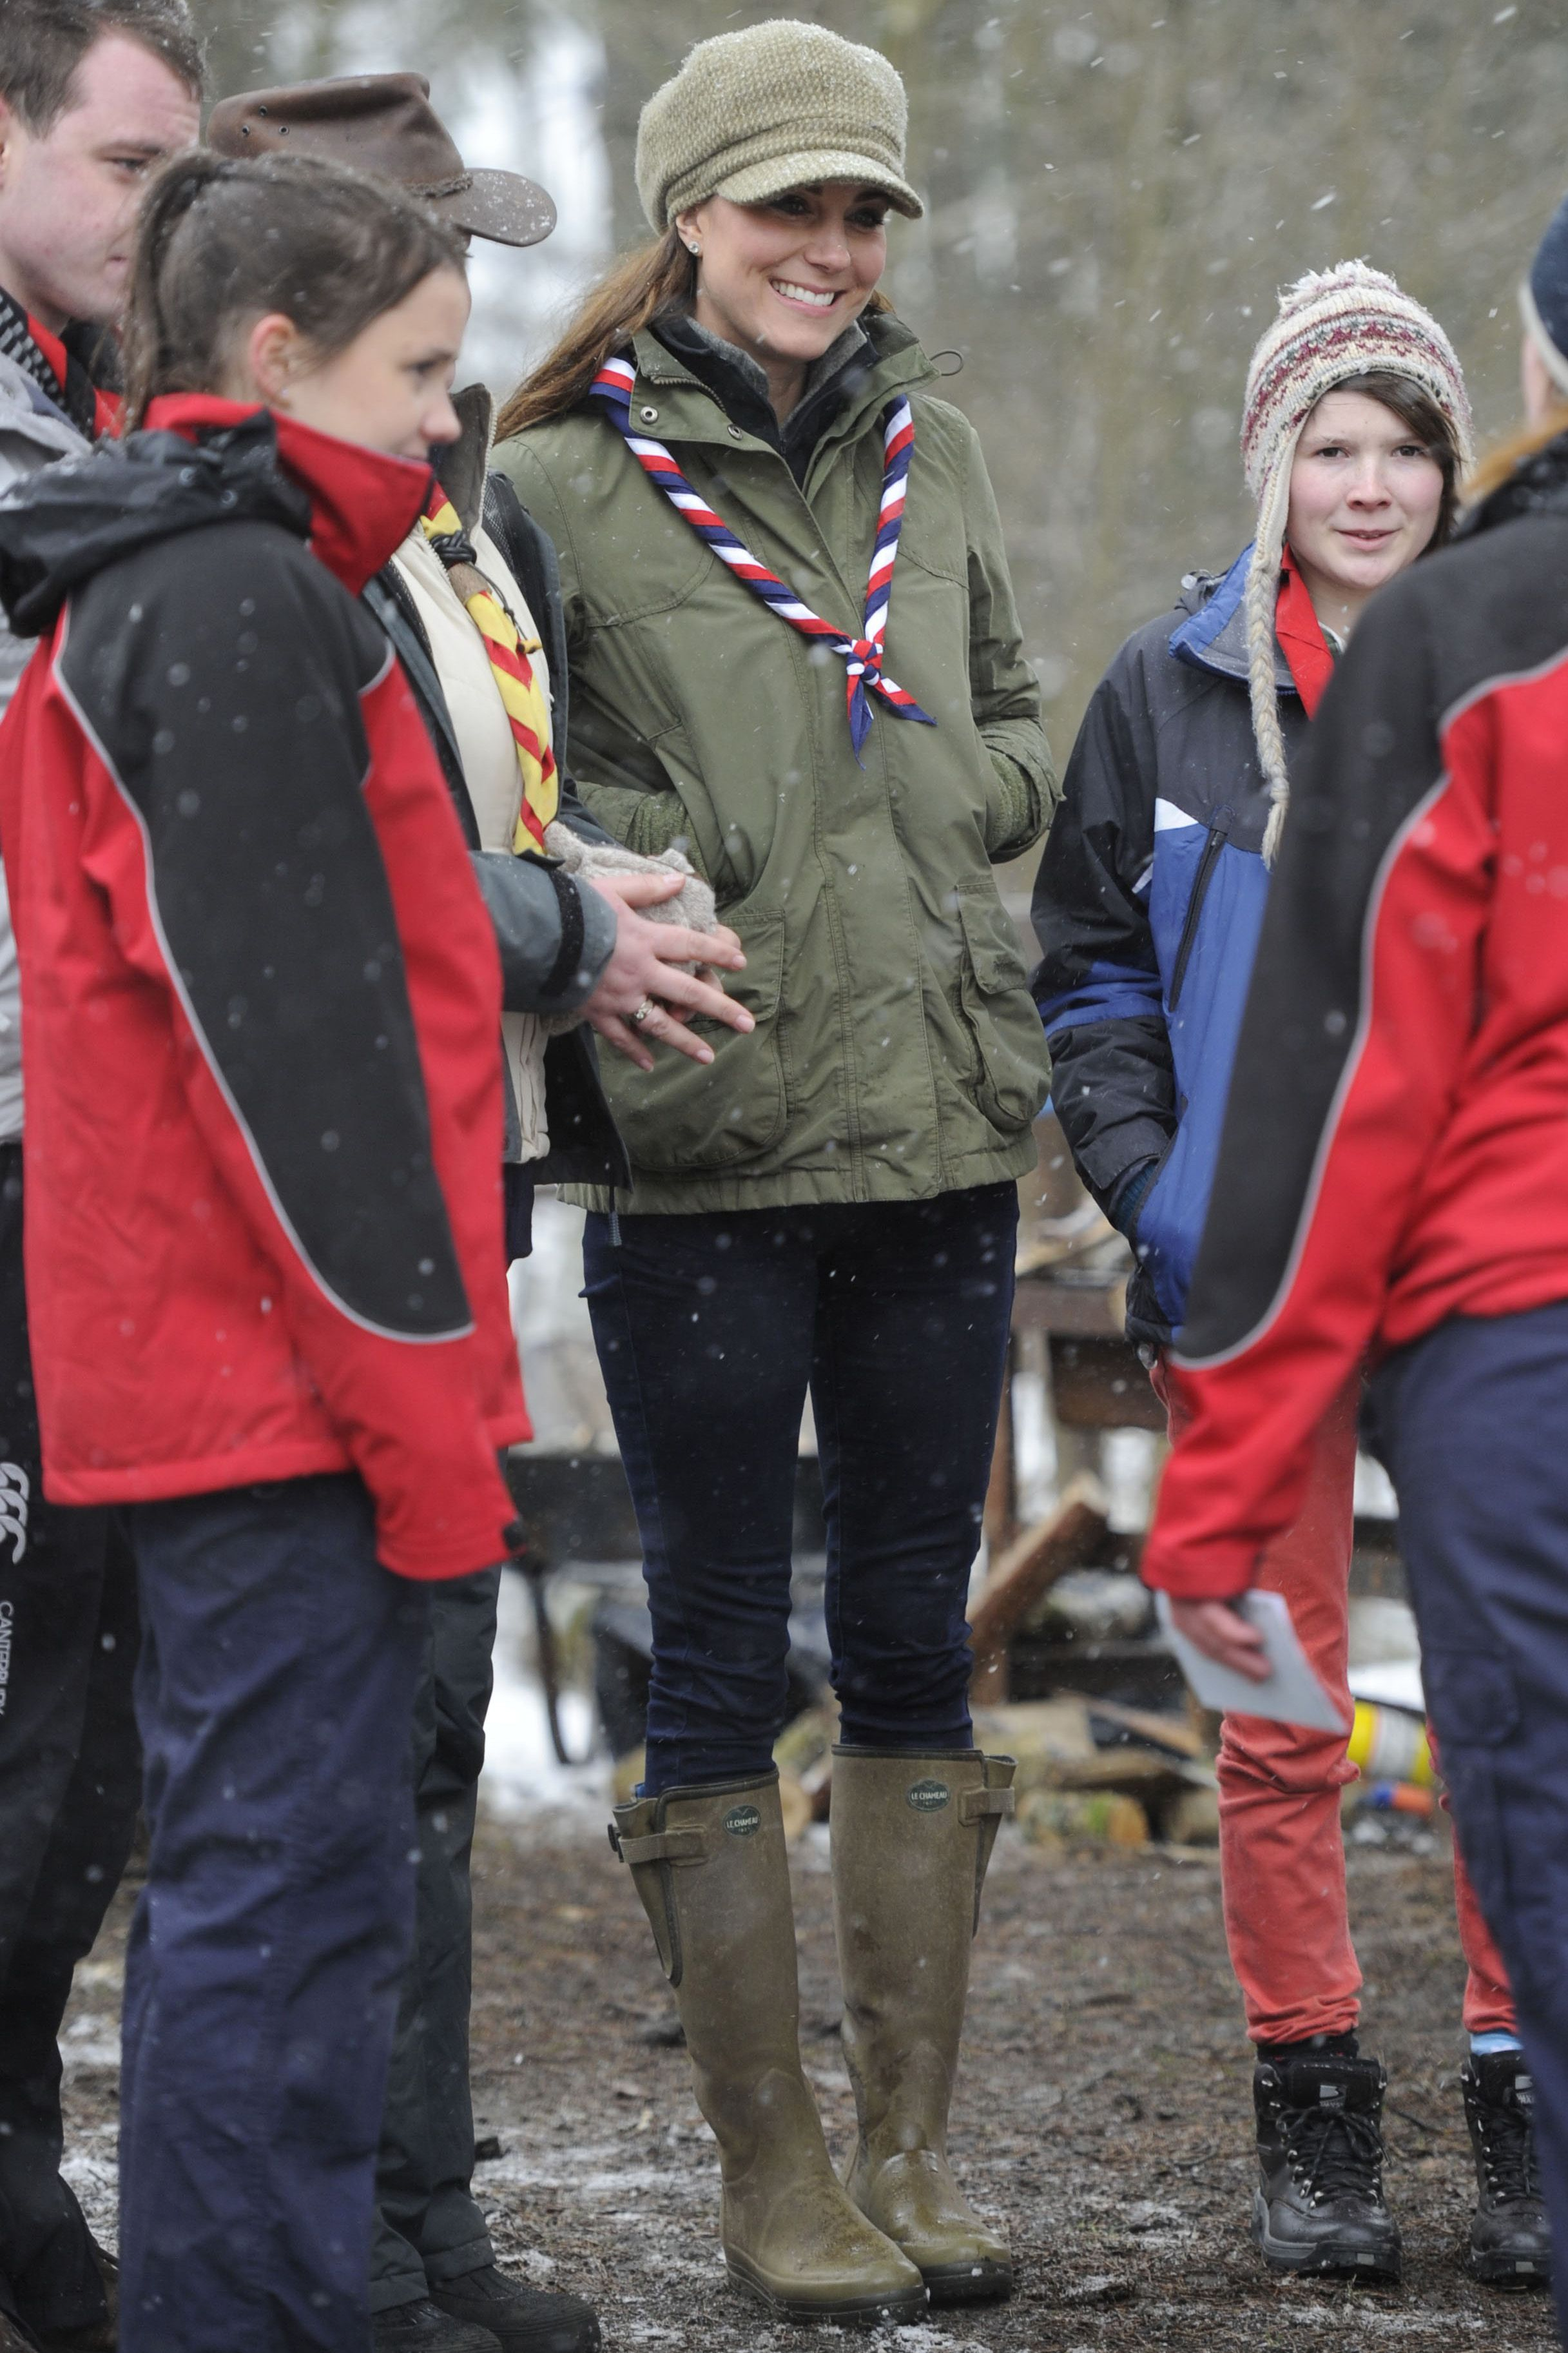 Kate Middleton To Spend Day Volunteering With The Scouts forecasting